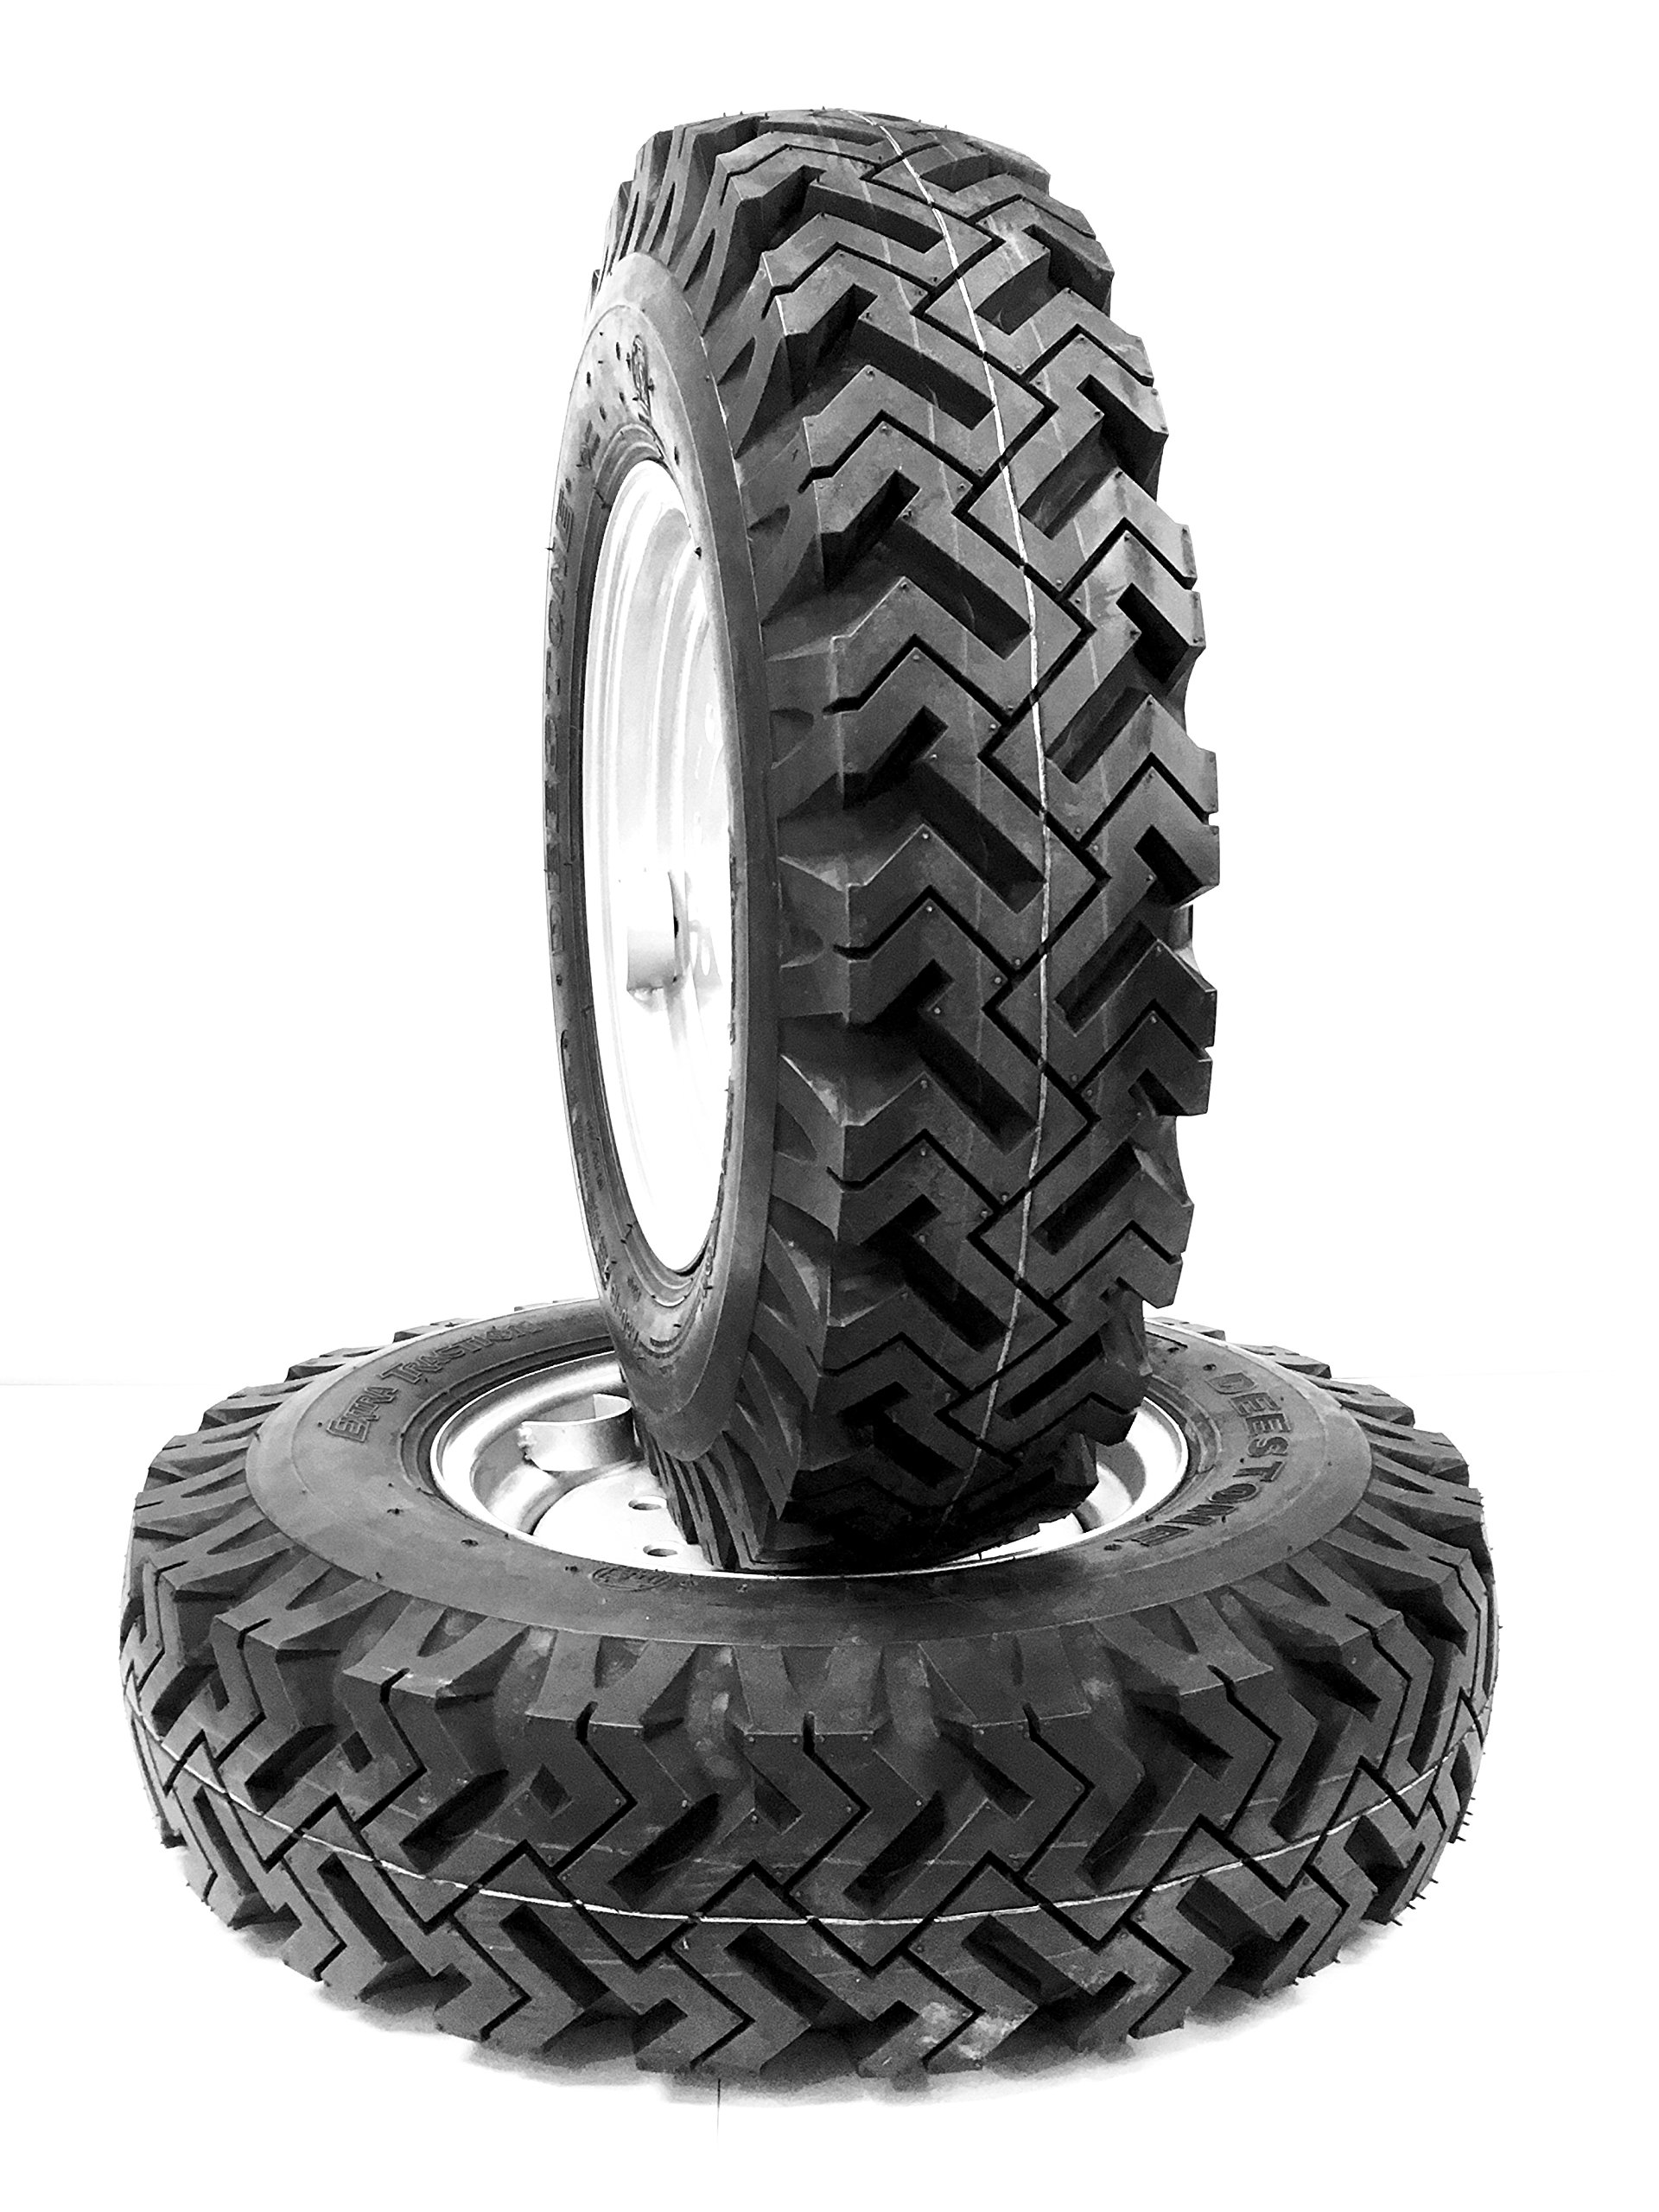 Mud & Snow Set of 4 skid-steer snow tires Replaces 10x16. 5 & 12x16. 5, bolt on ready!